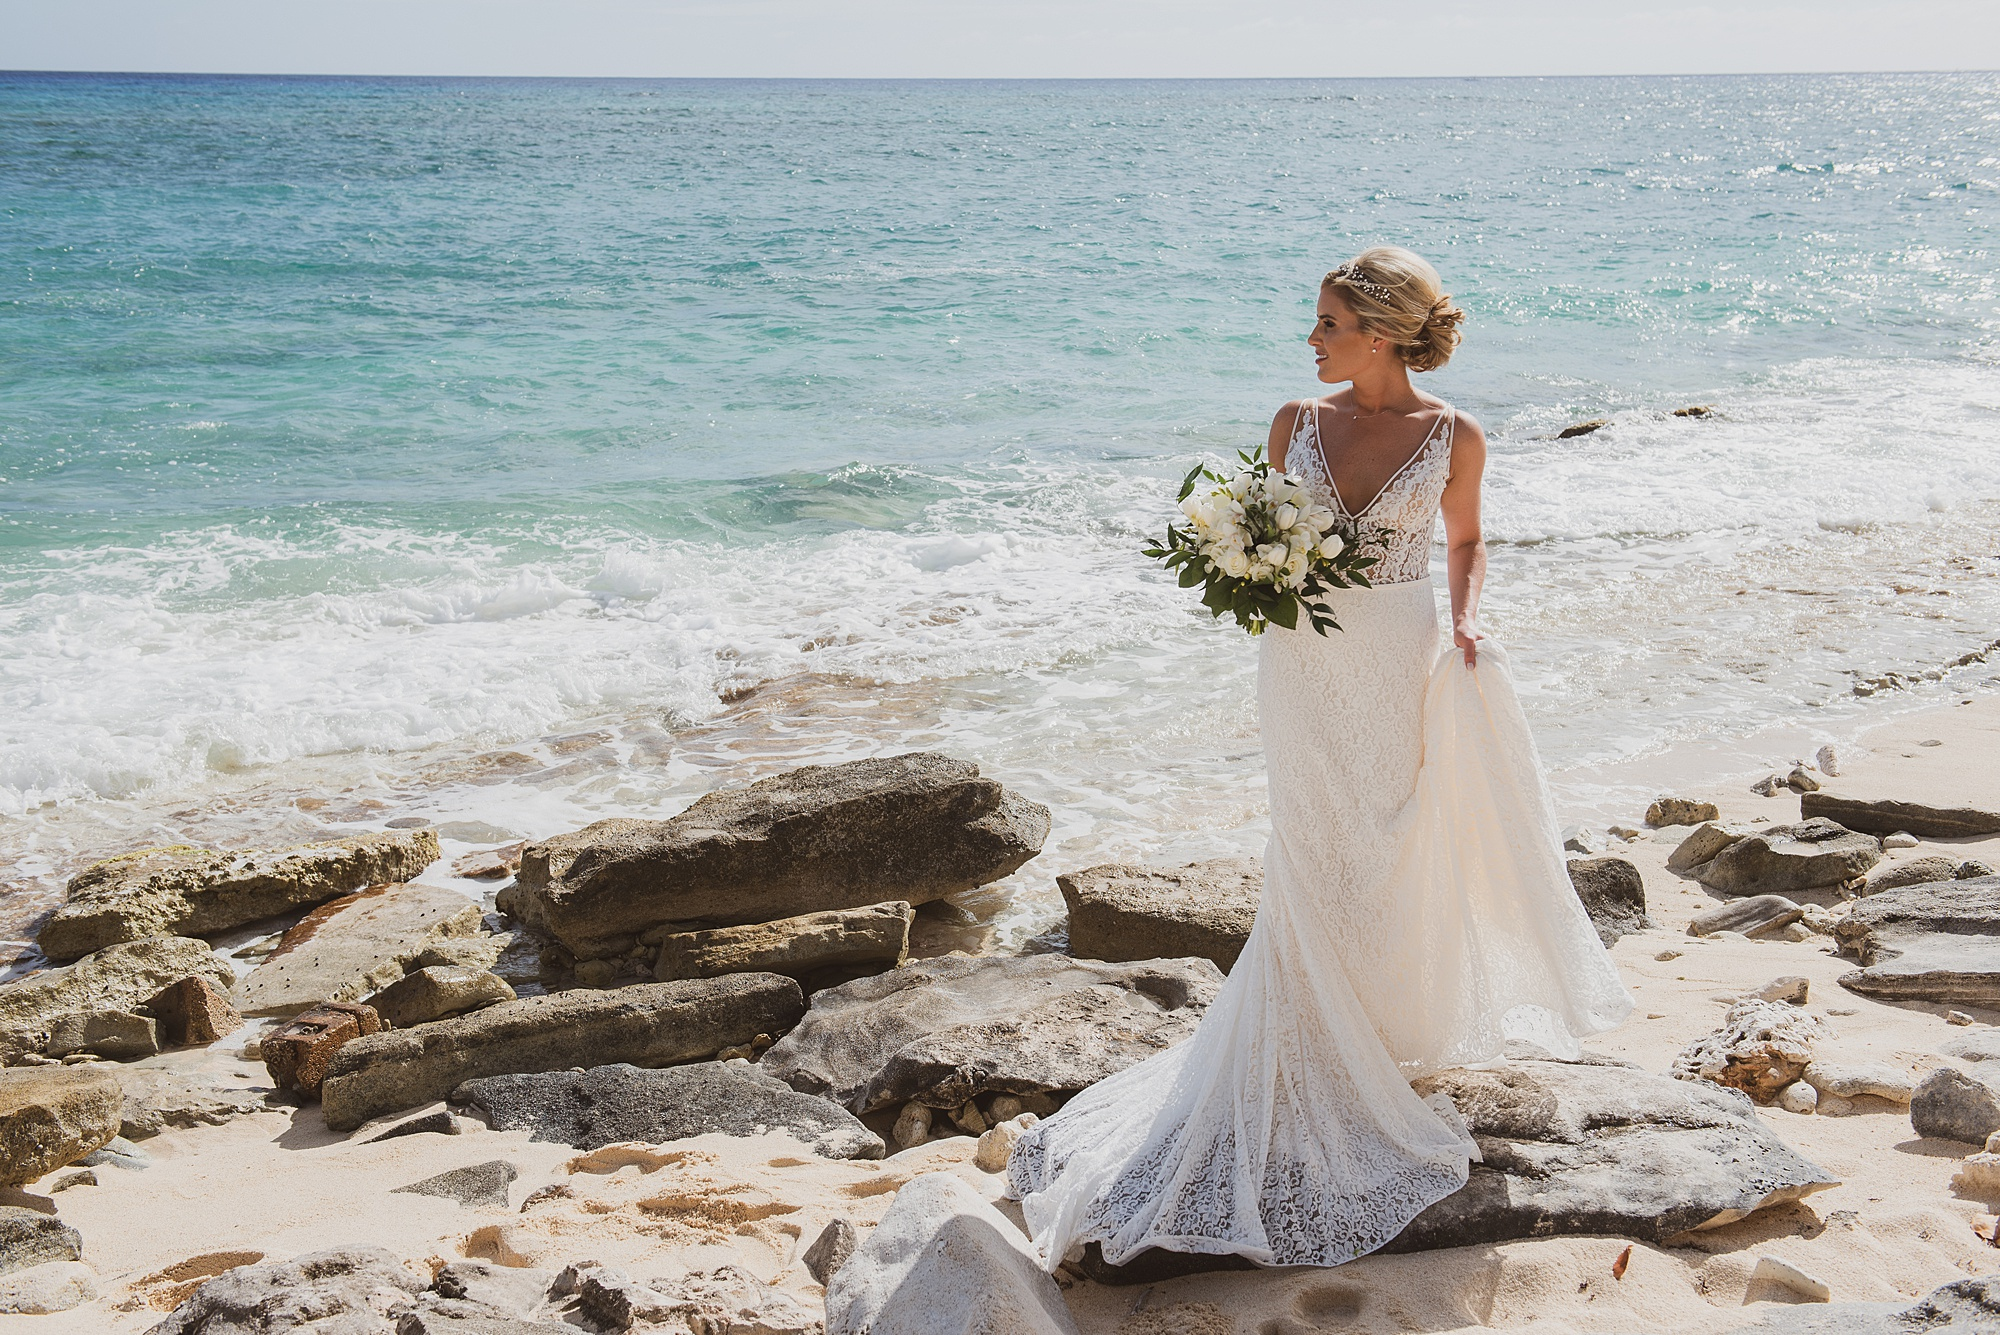 cayman islands bride by janet jarchow